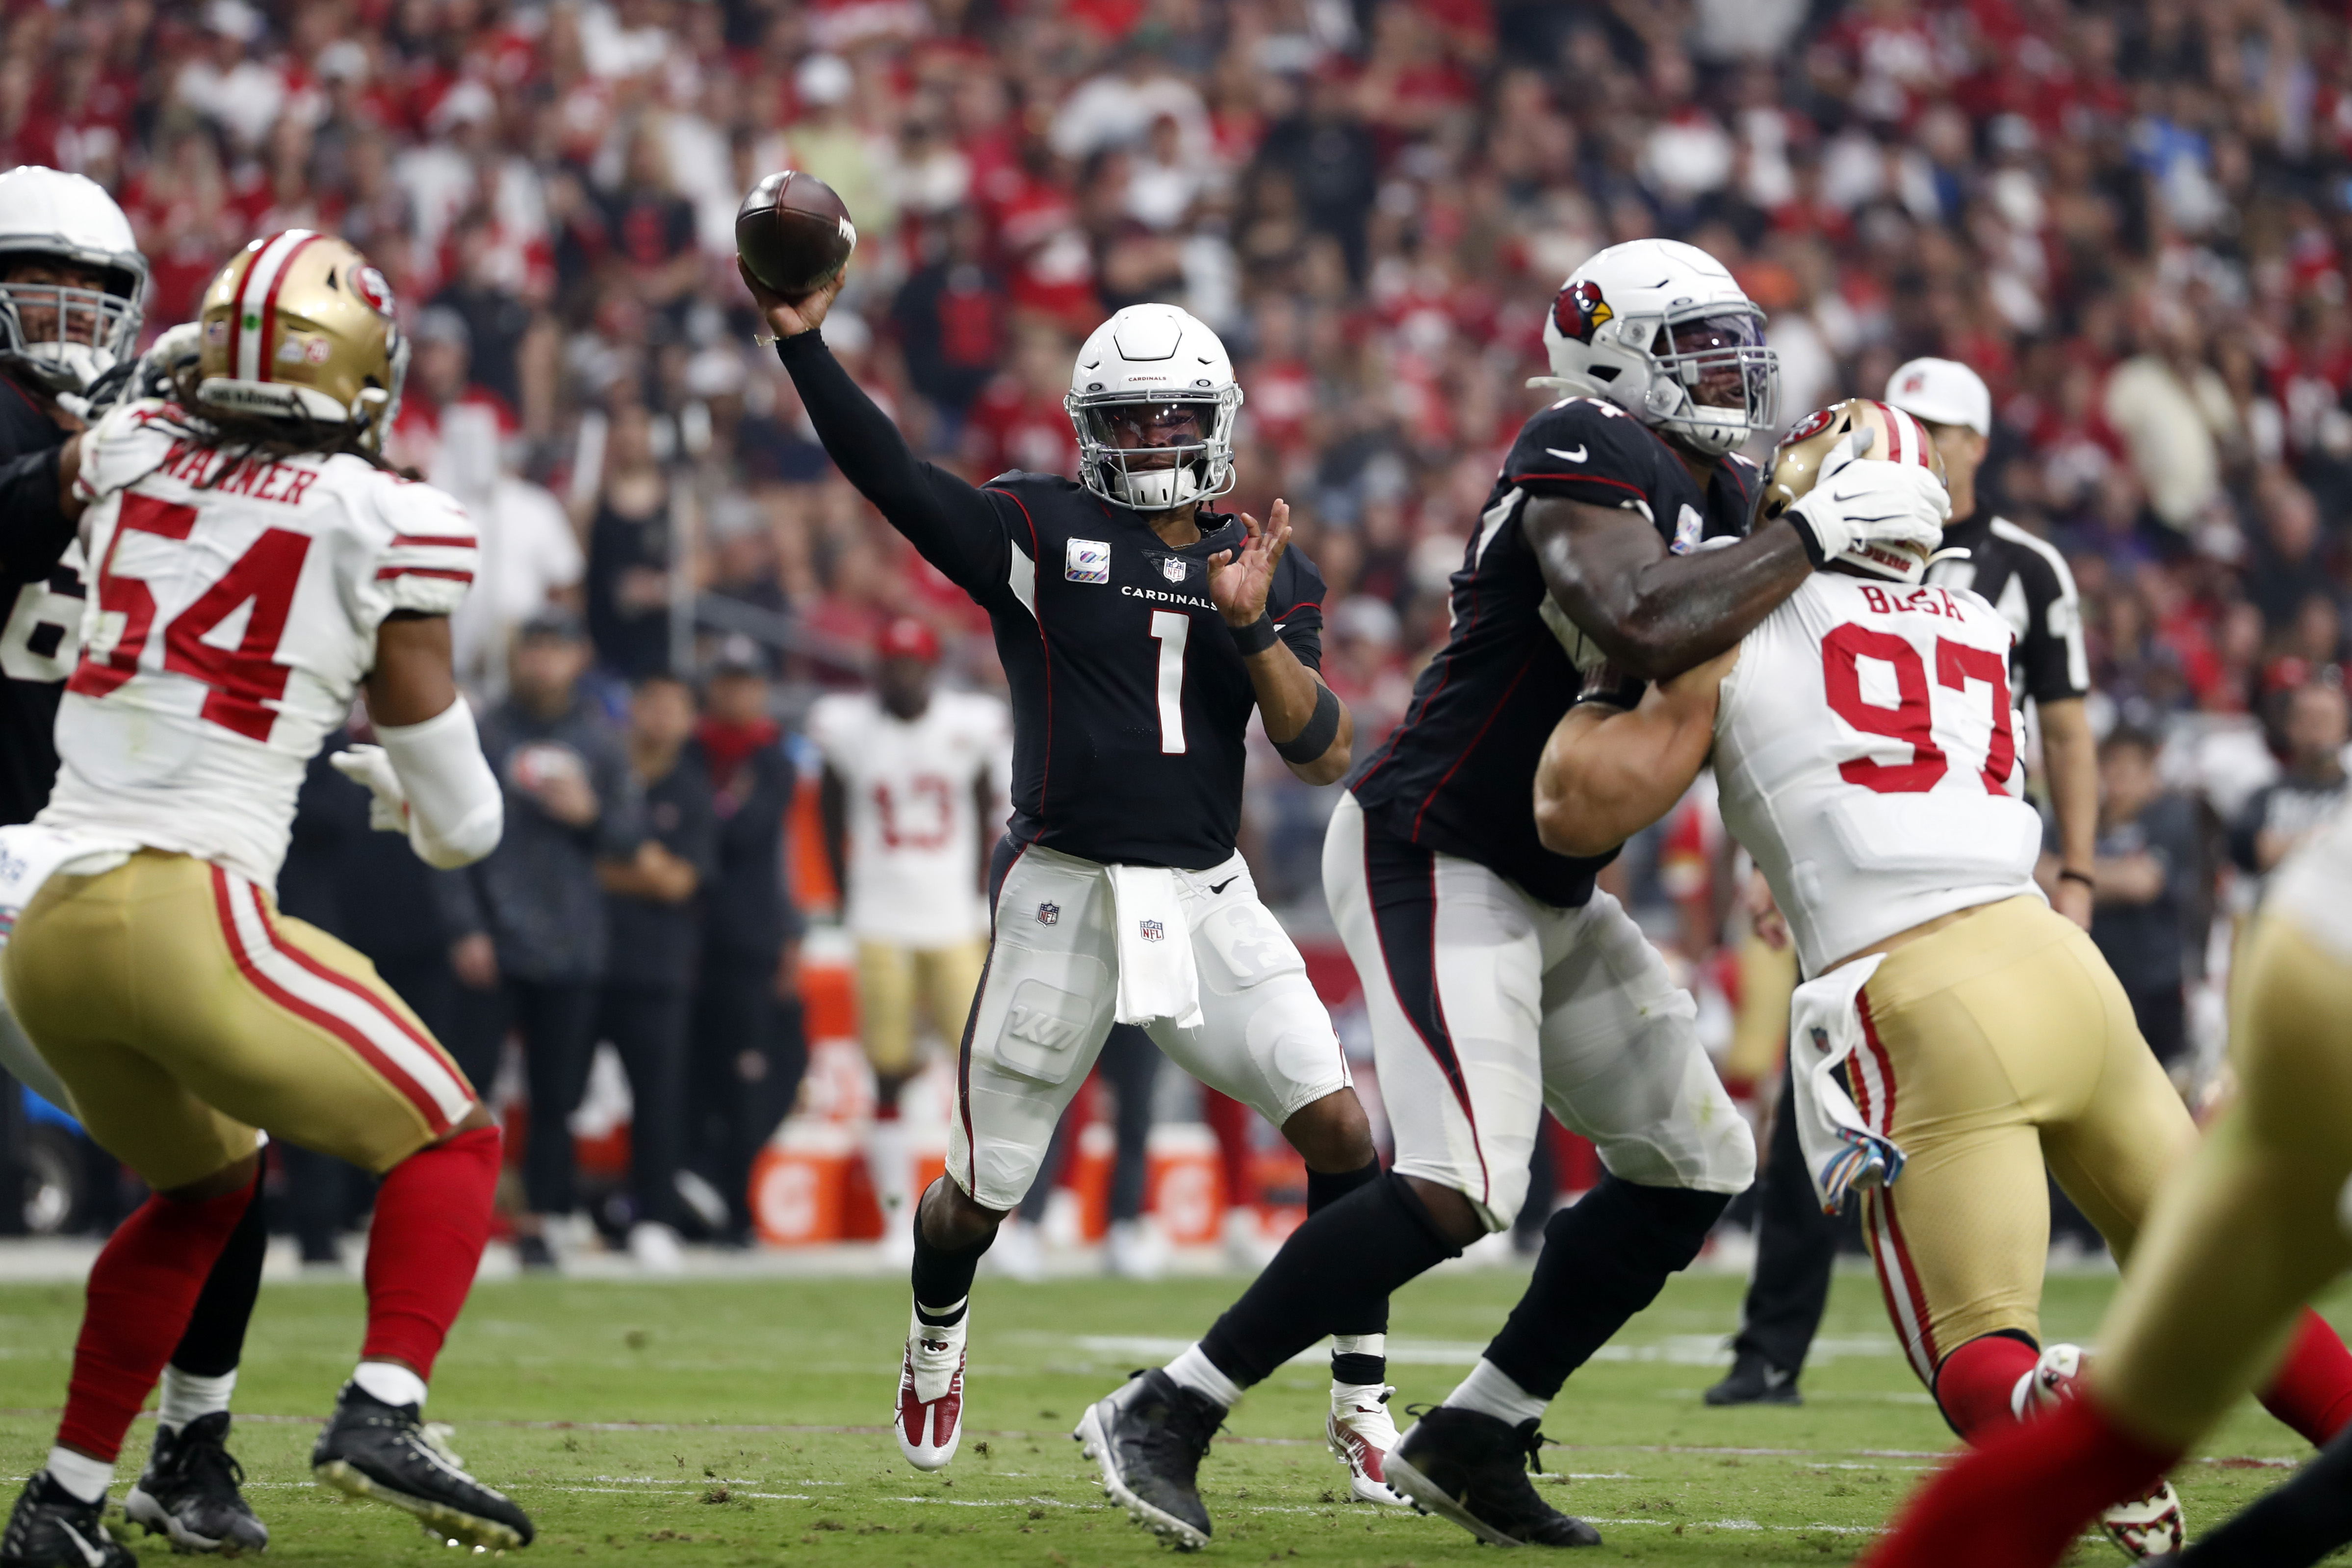 Arizona Cardinals quarterback Kyler Murray (1) throws a pass during the first half against the San Francisco 49ers at State Farm Stadium.